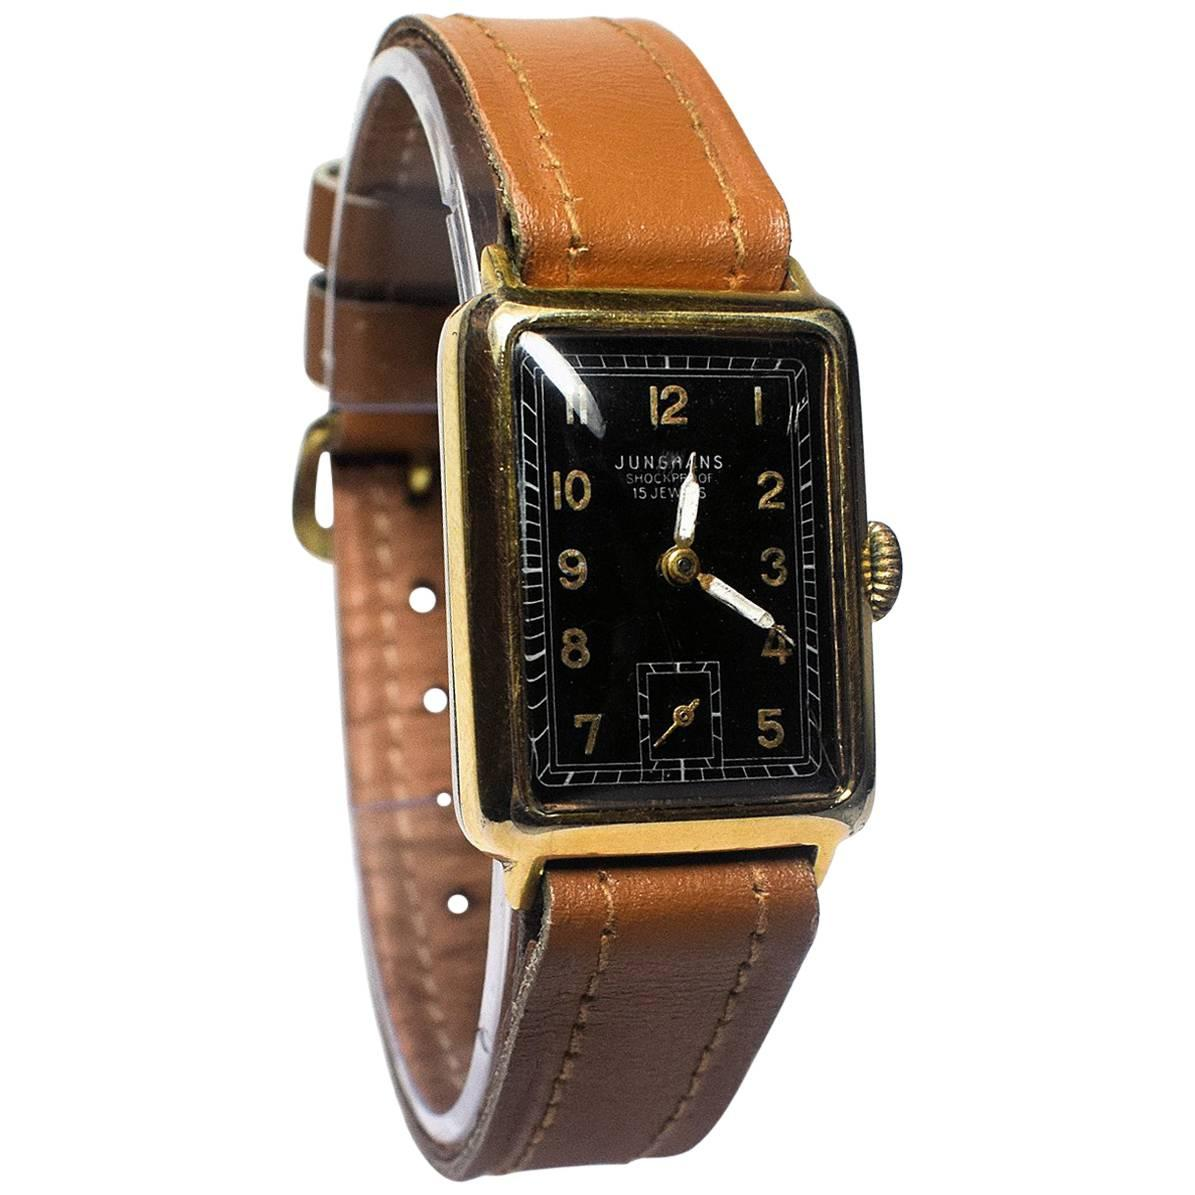 Art Deco 1930s Mans Watch by Junghans